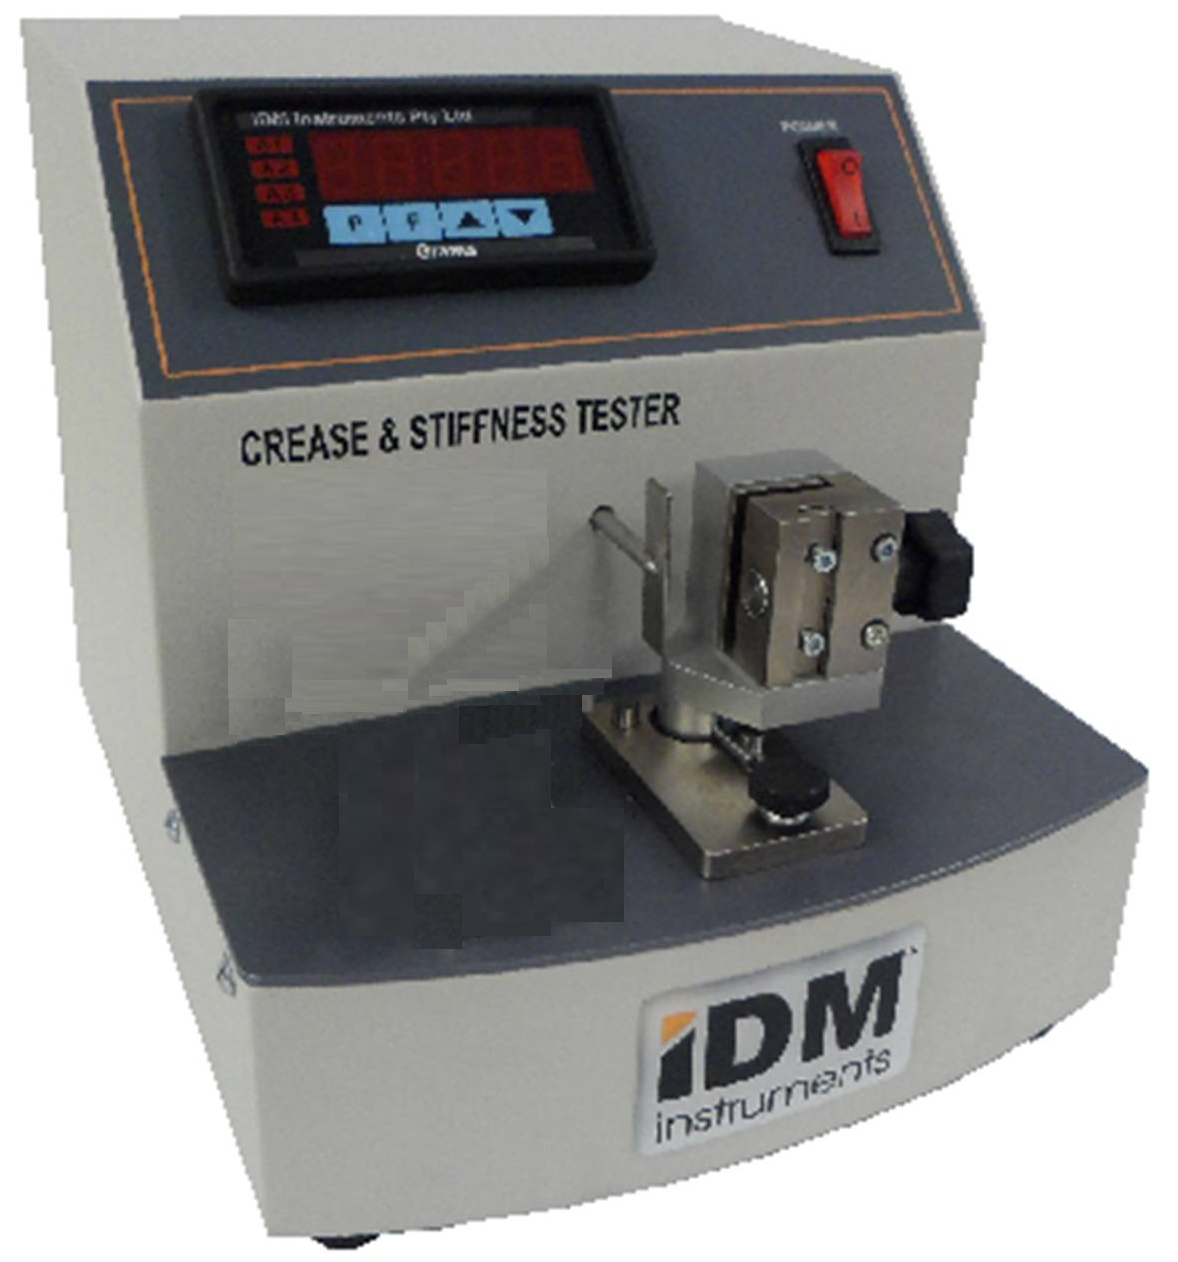 C0039-RC - Crease & Stiffness Tester for ROUND Corners ISSUE 1